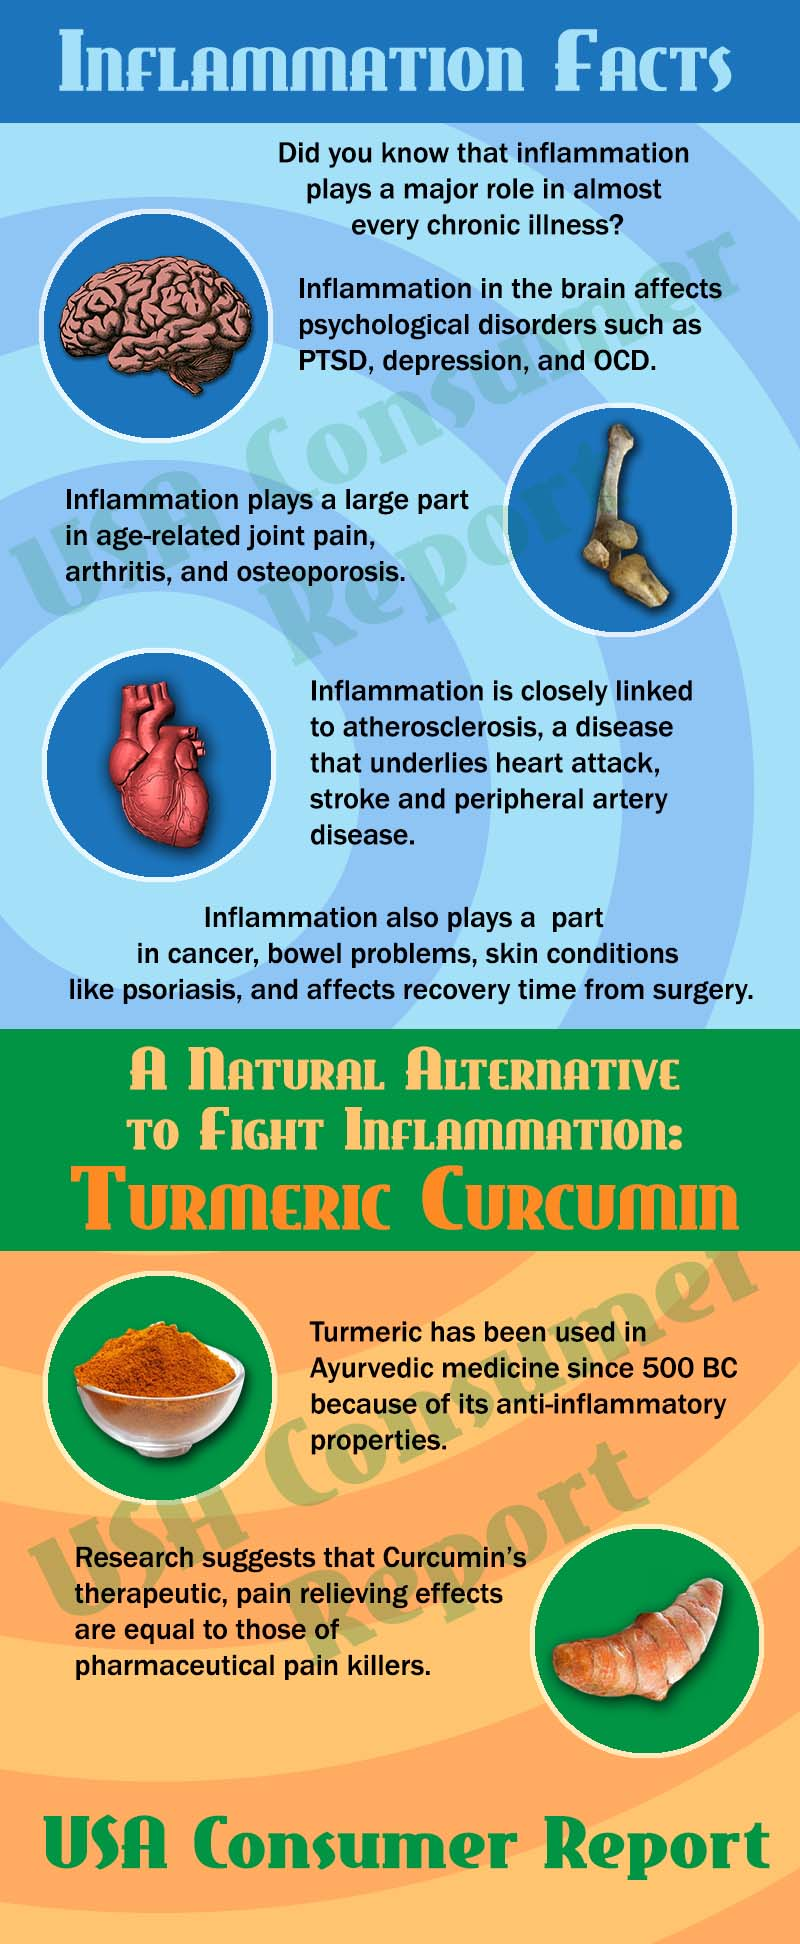 Infographic explaining how turmeric fights against inflammation